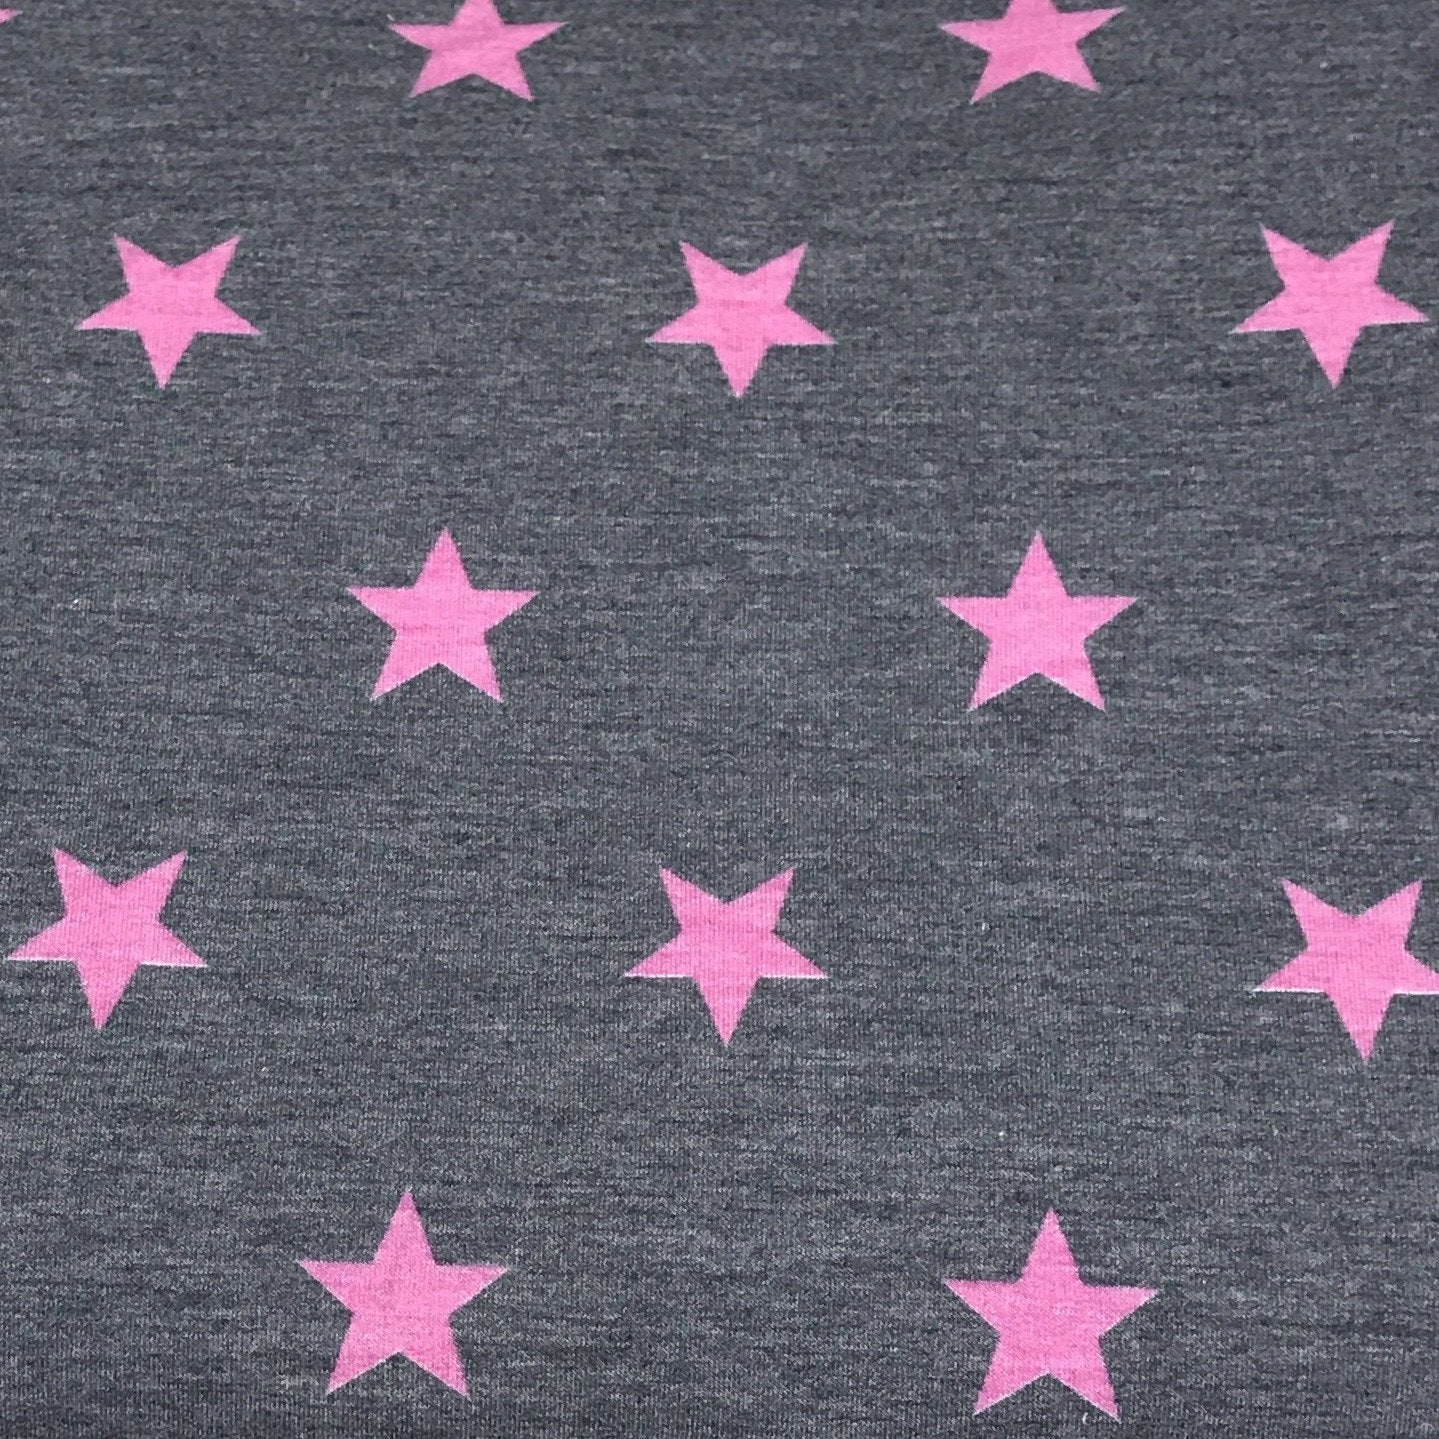 Navy/Pink STARS -Poly Rayon Spandex French Terry - By the yard